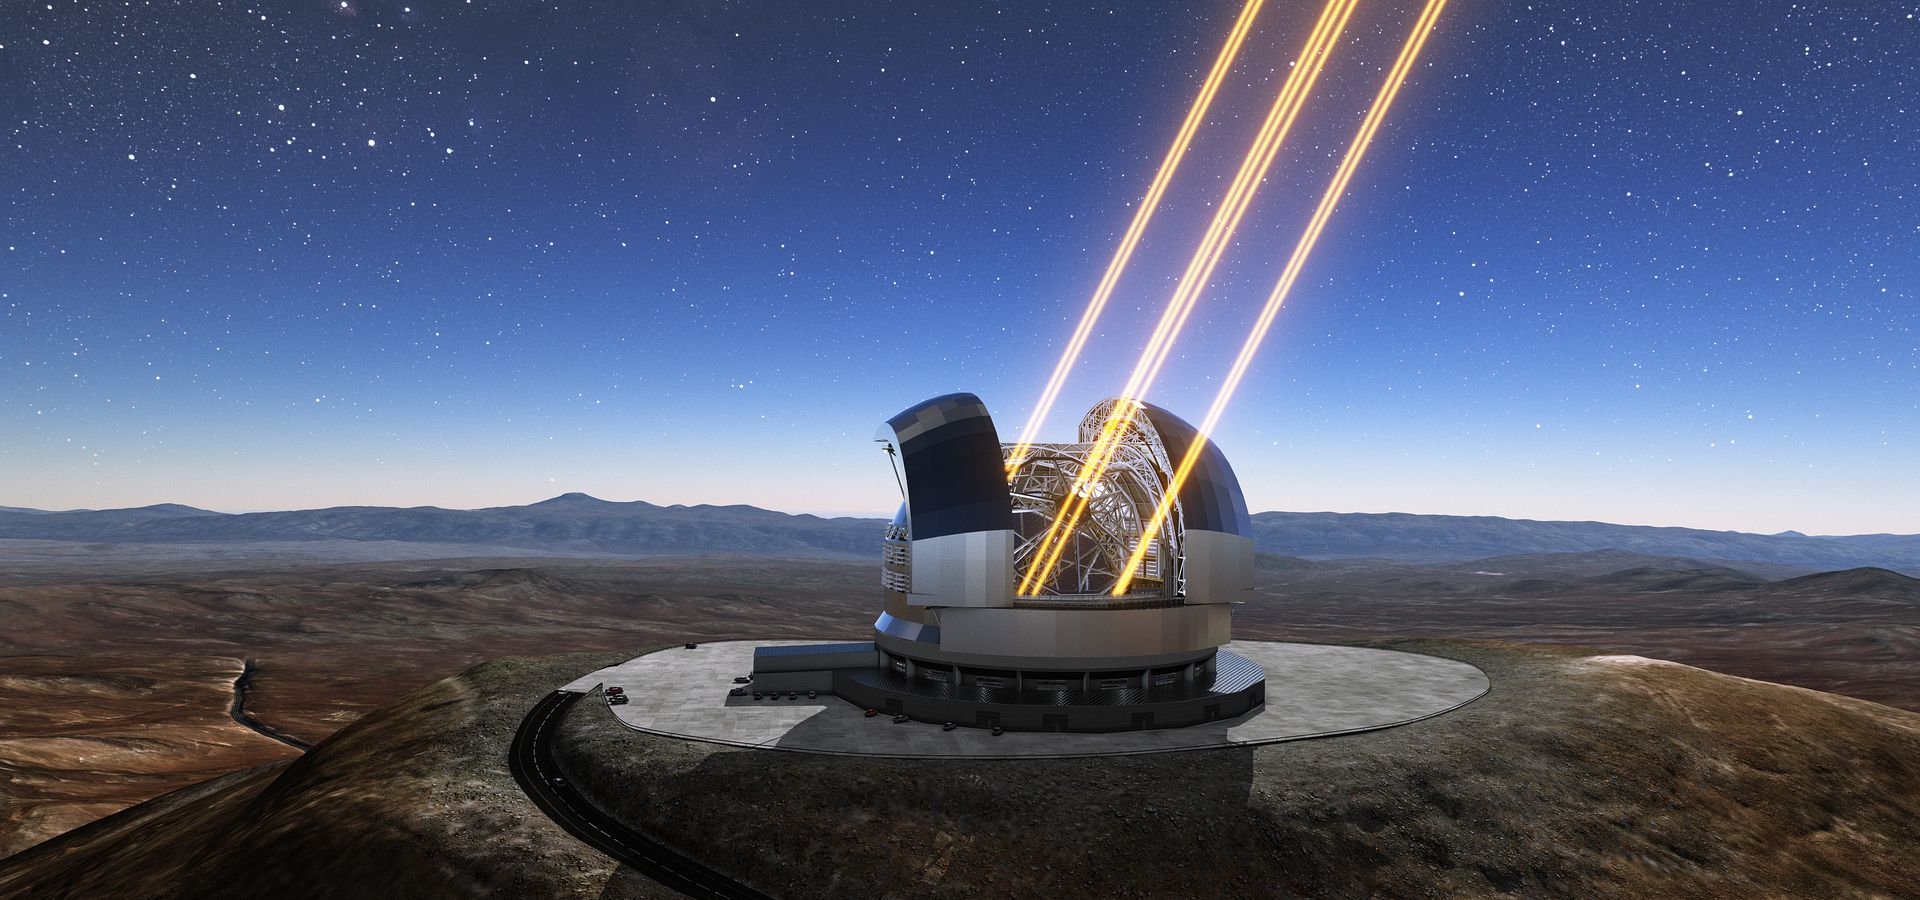 First Stone Ceremony for ESO's Extremely Large Telescope